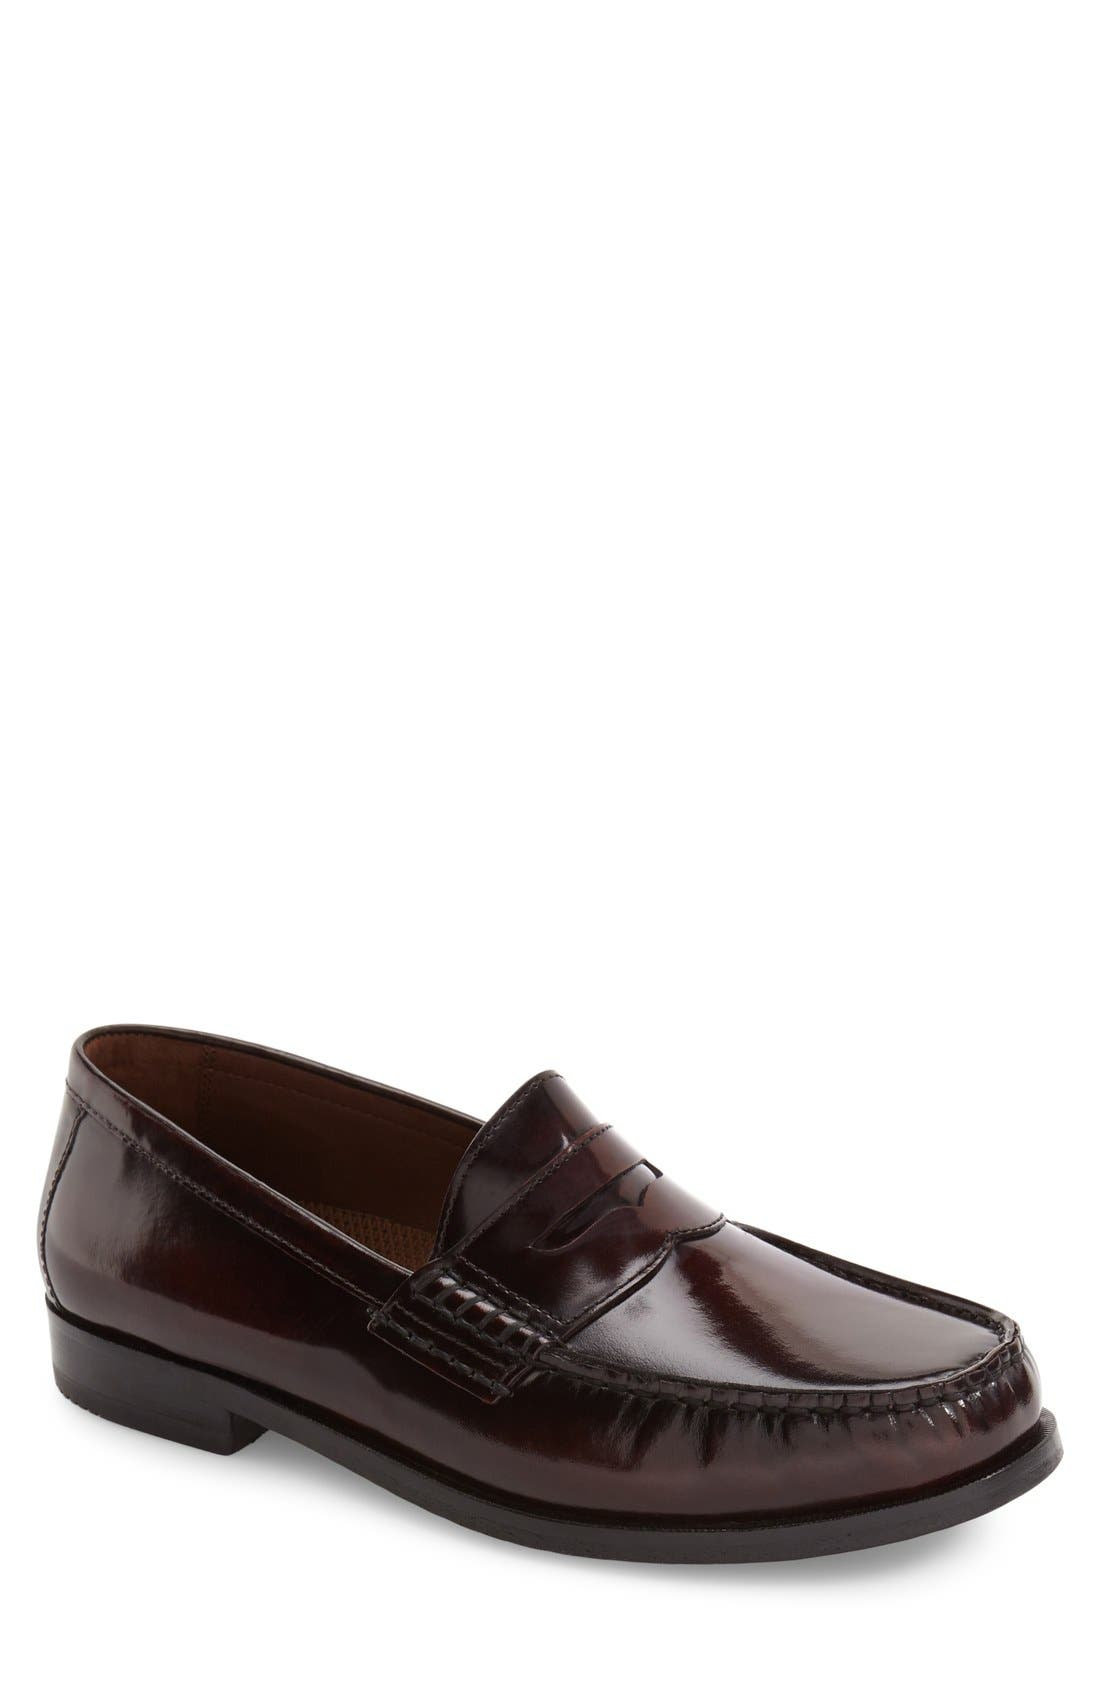 Johnston & Murphy Pannell Penny Loafer (Men)